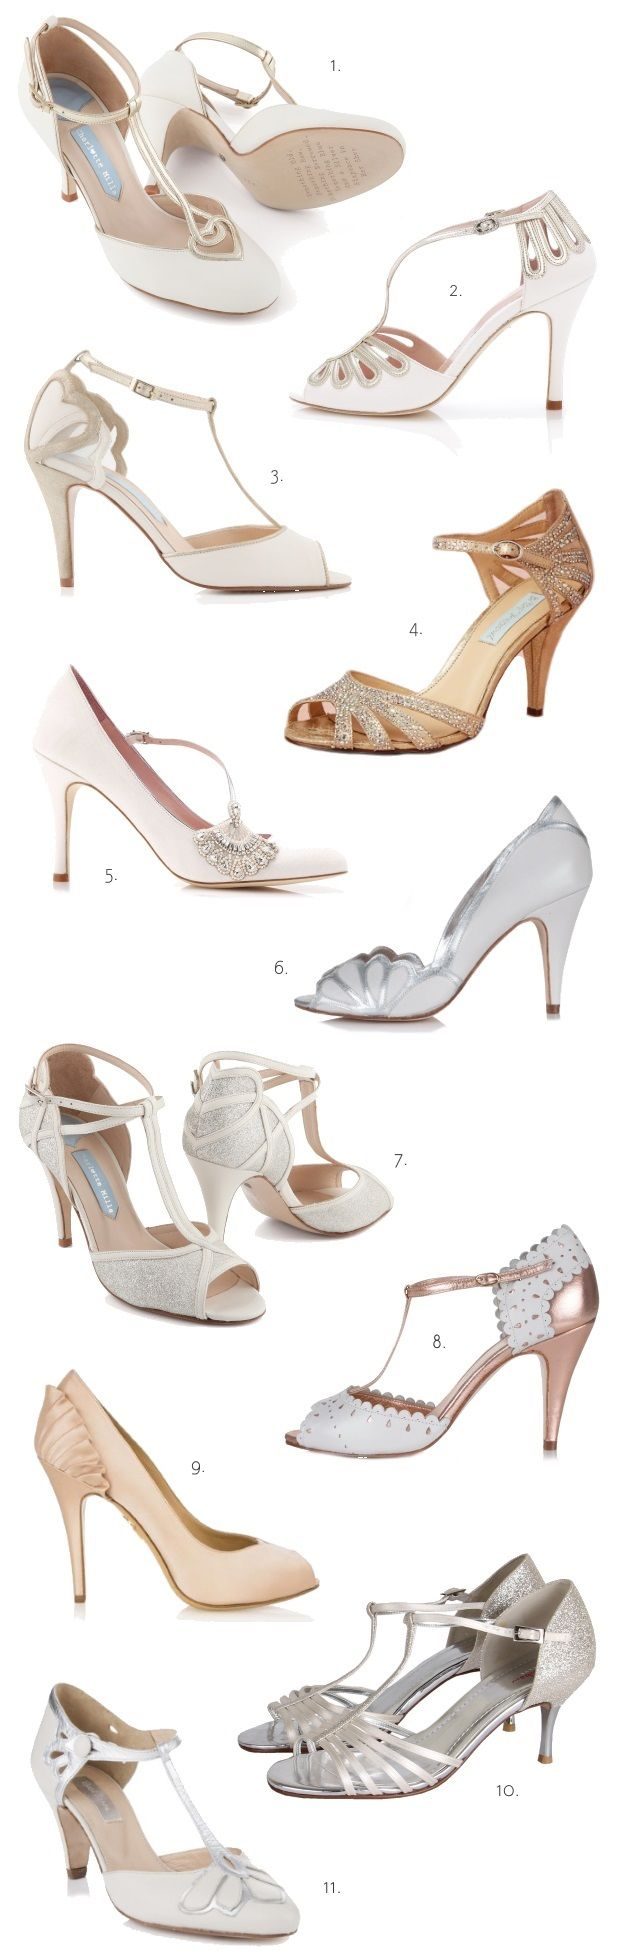 11 gorgeous vintage inspired wedding shoes wedding heels 11 gorgeous vintage inspired wedding shoes ombrellifo Images